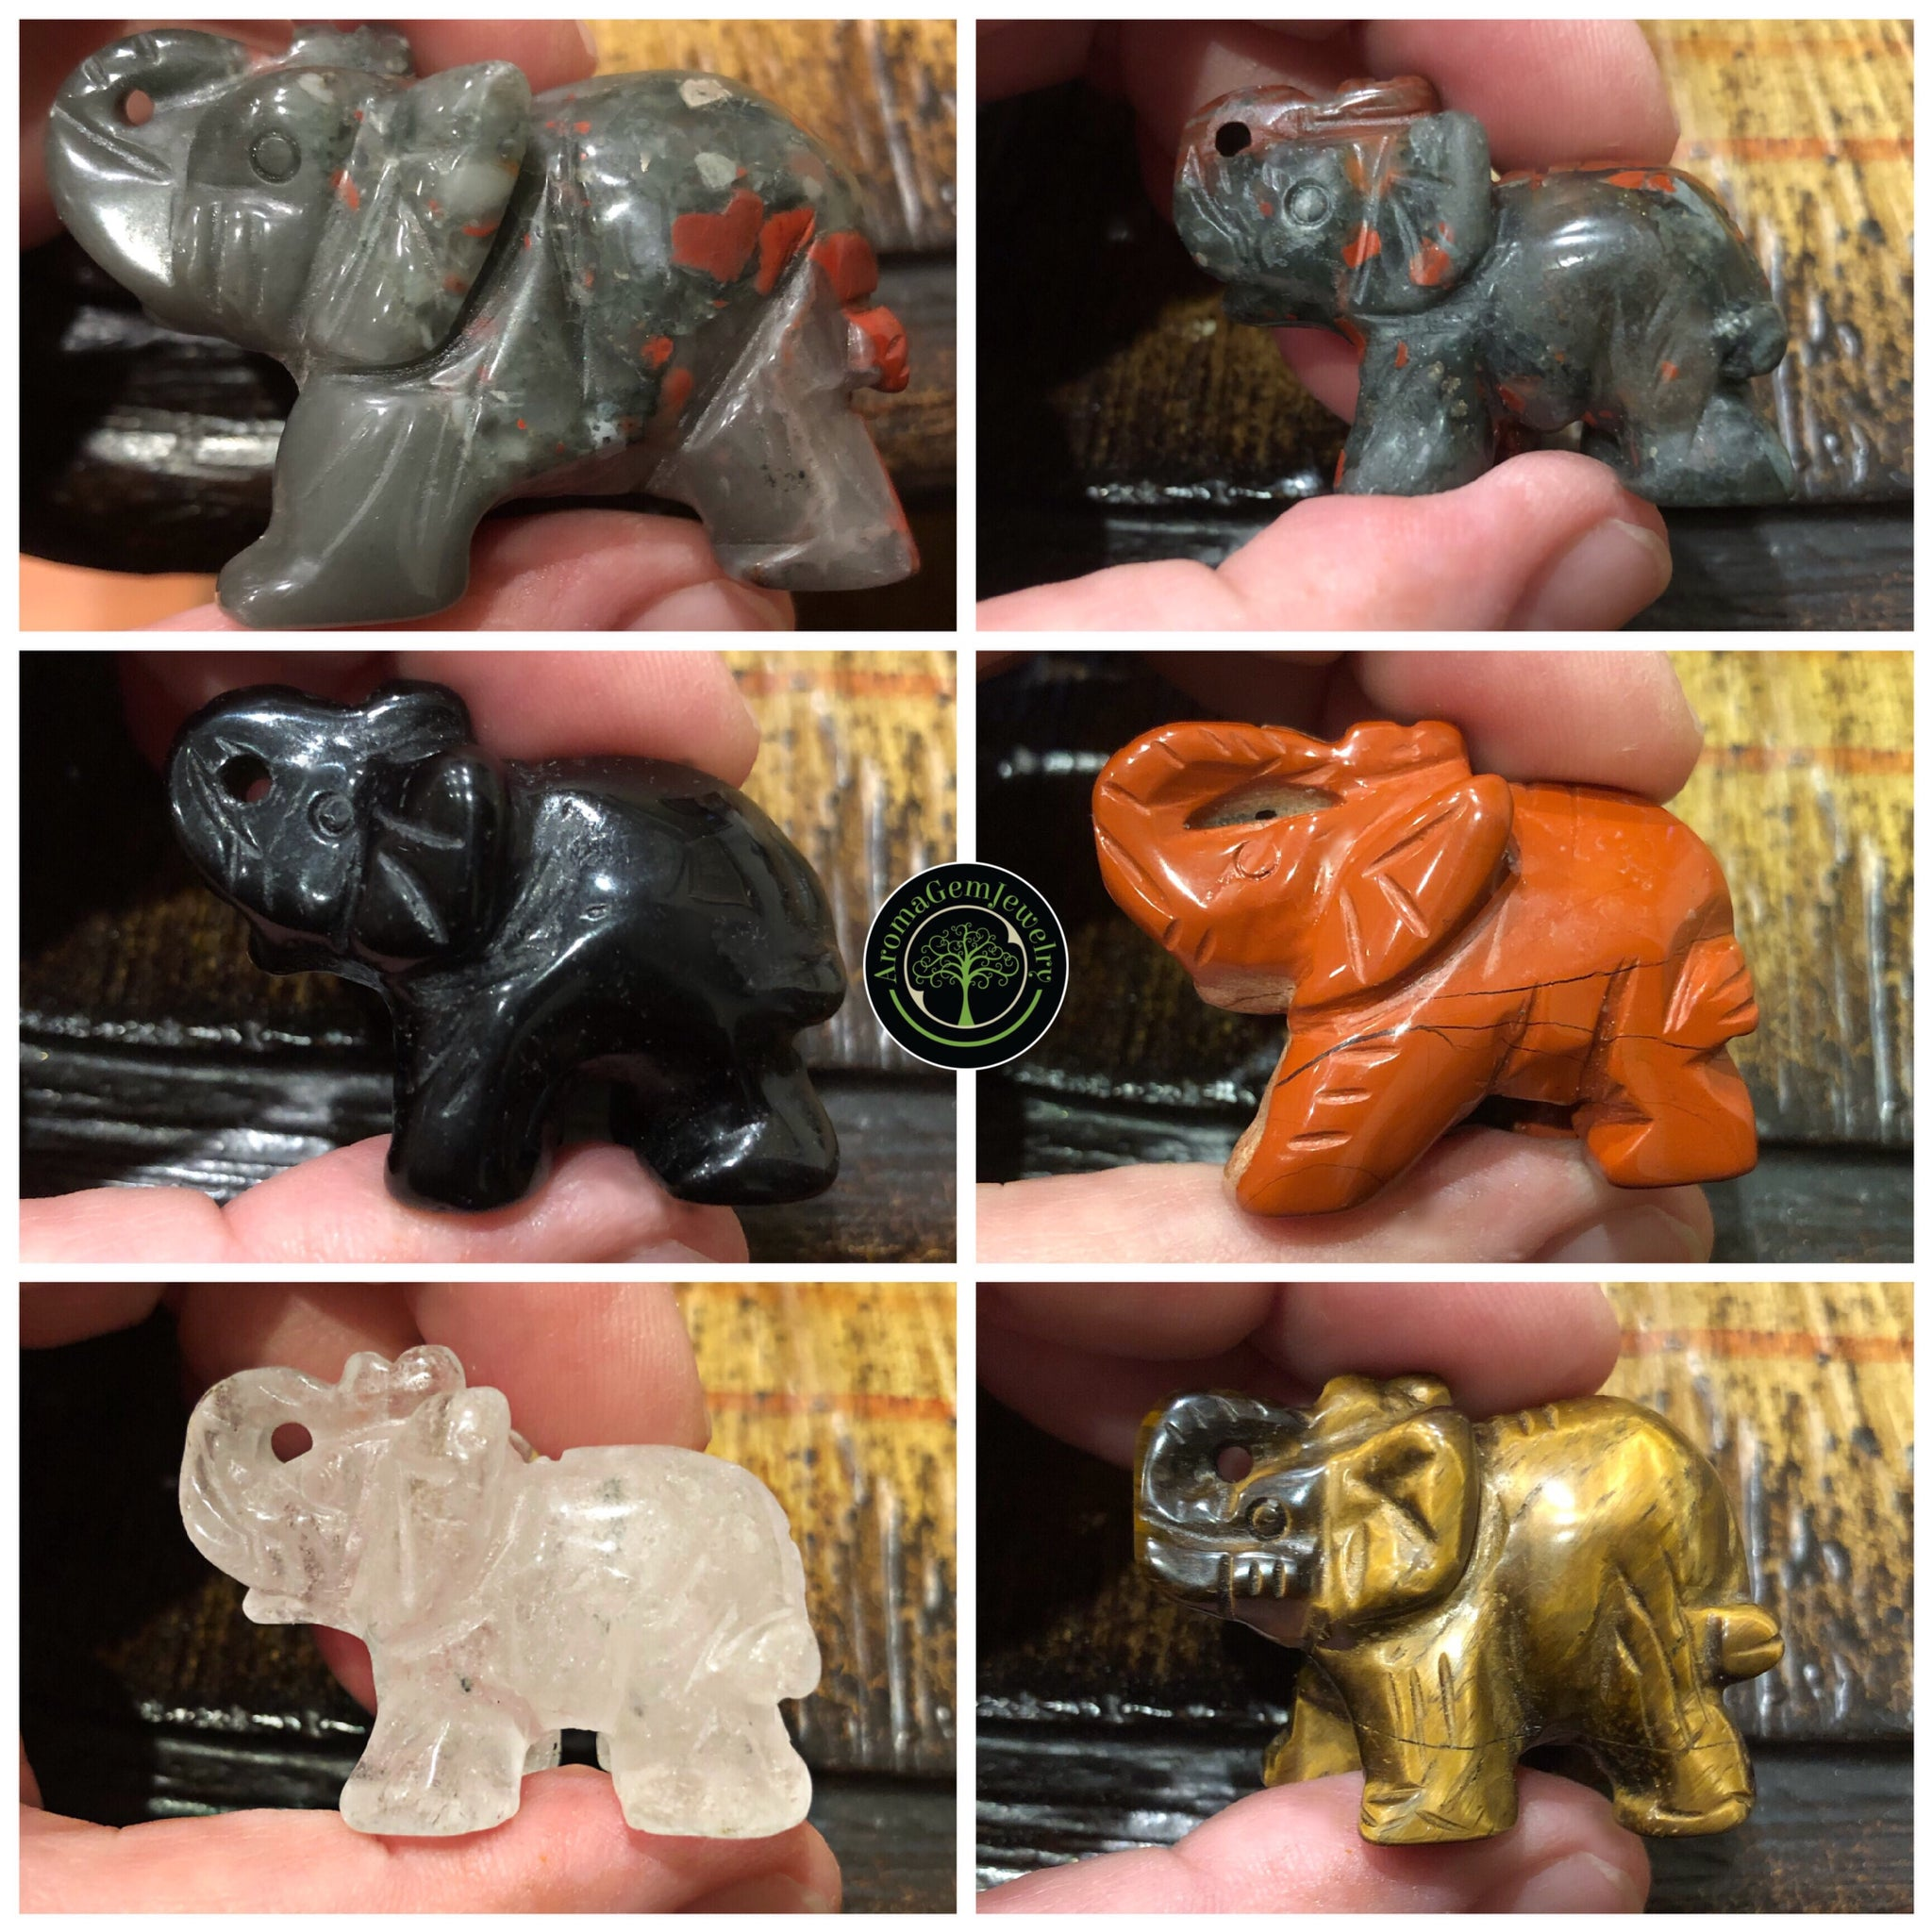 Gemstone carved elephants